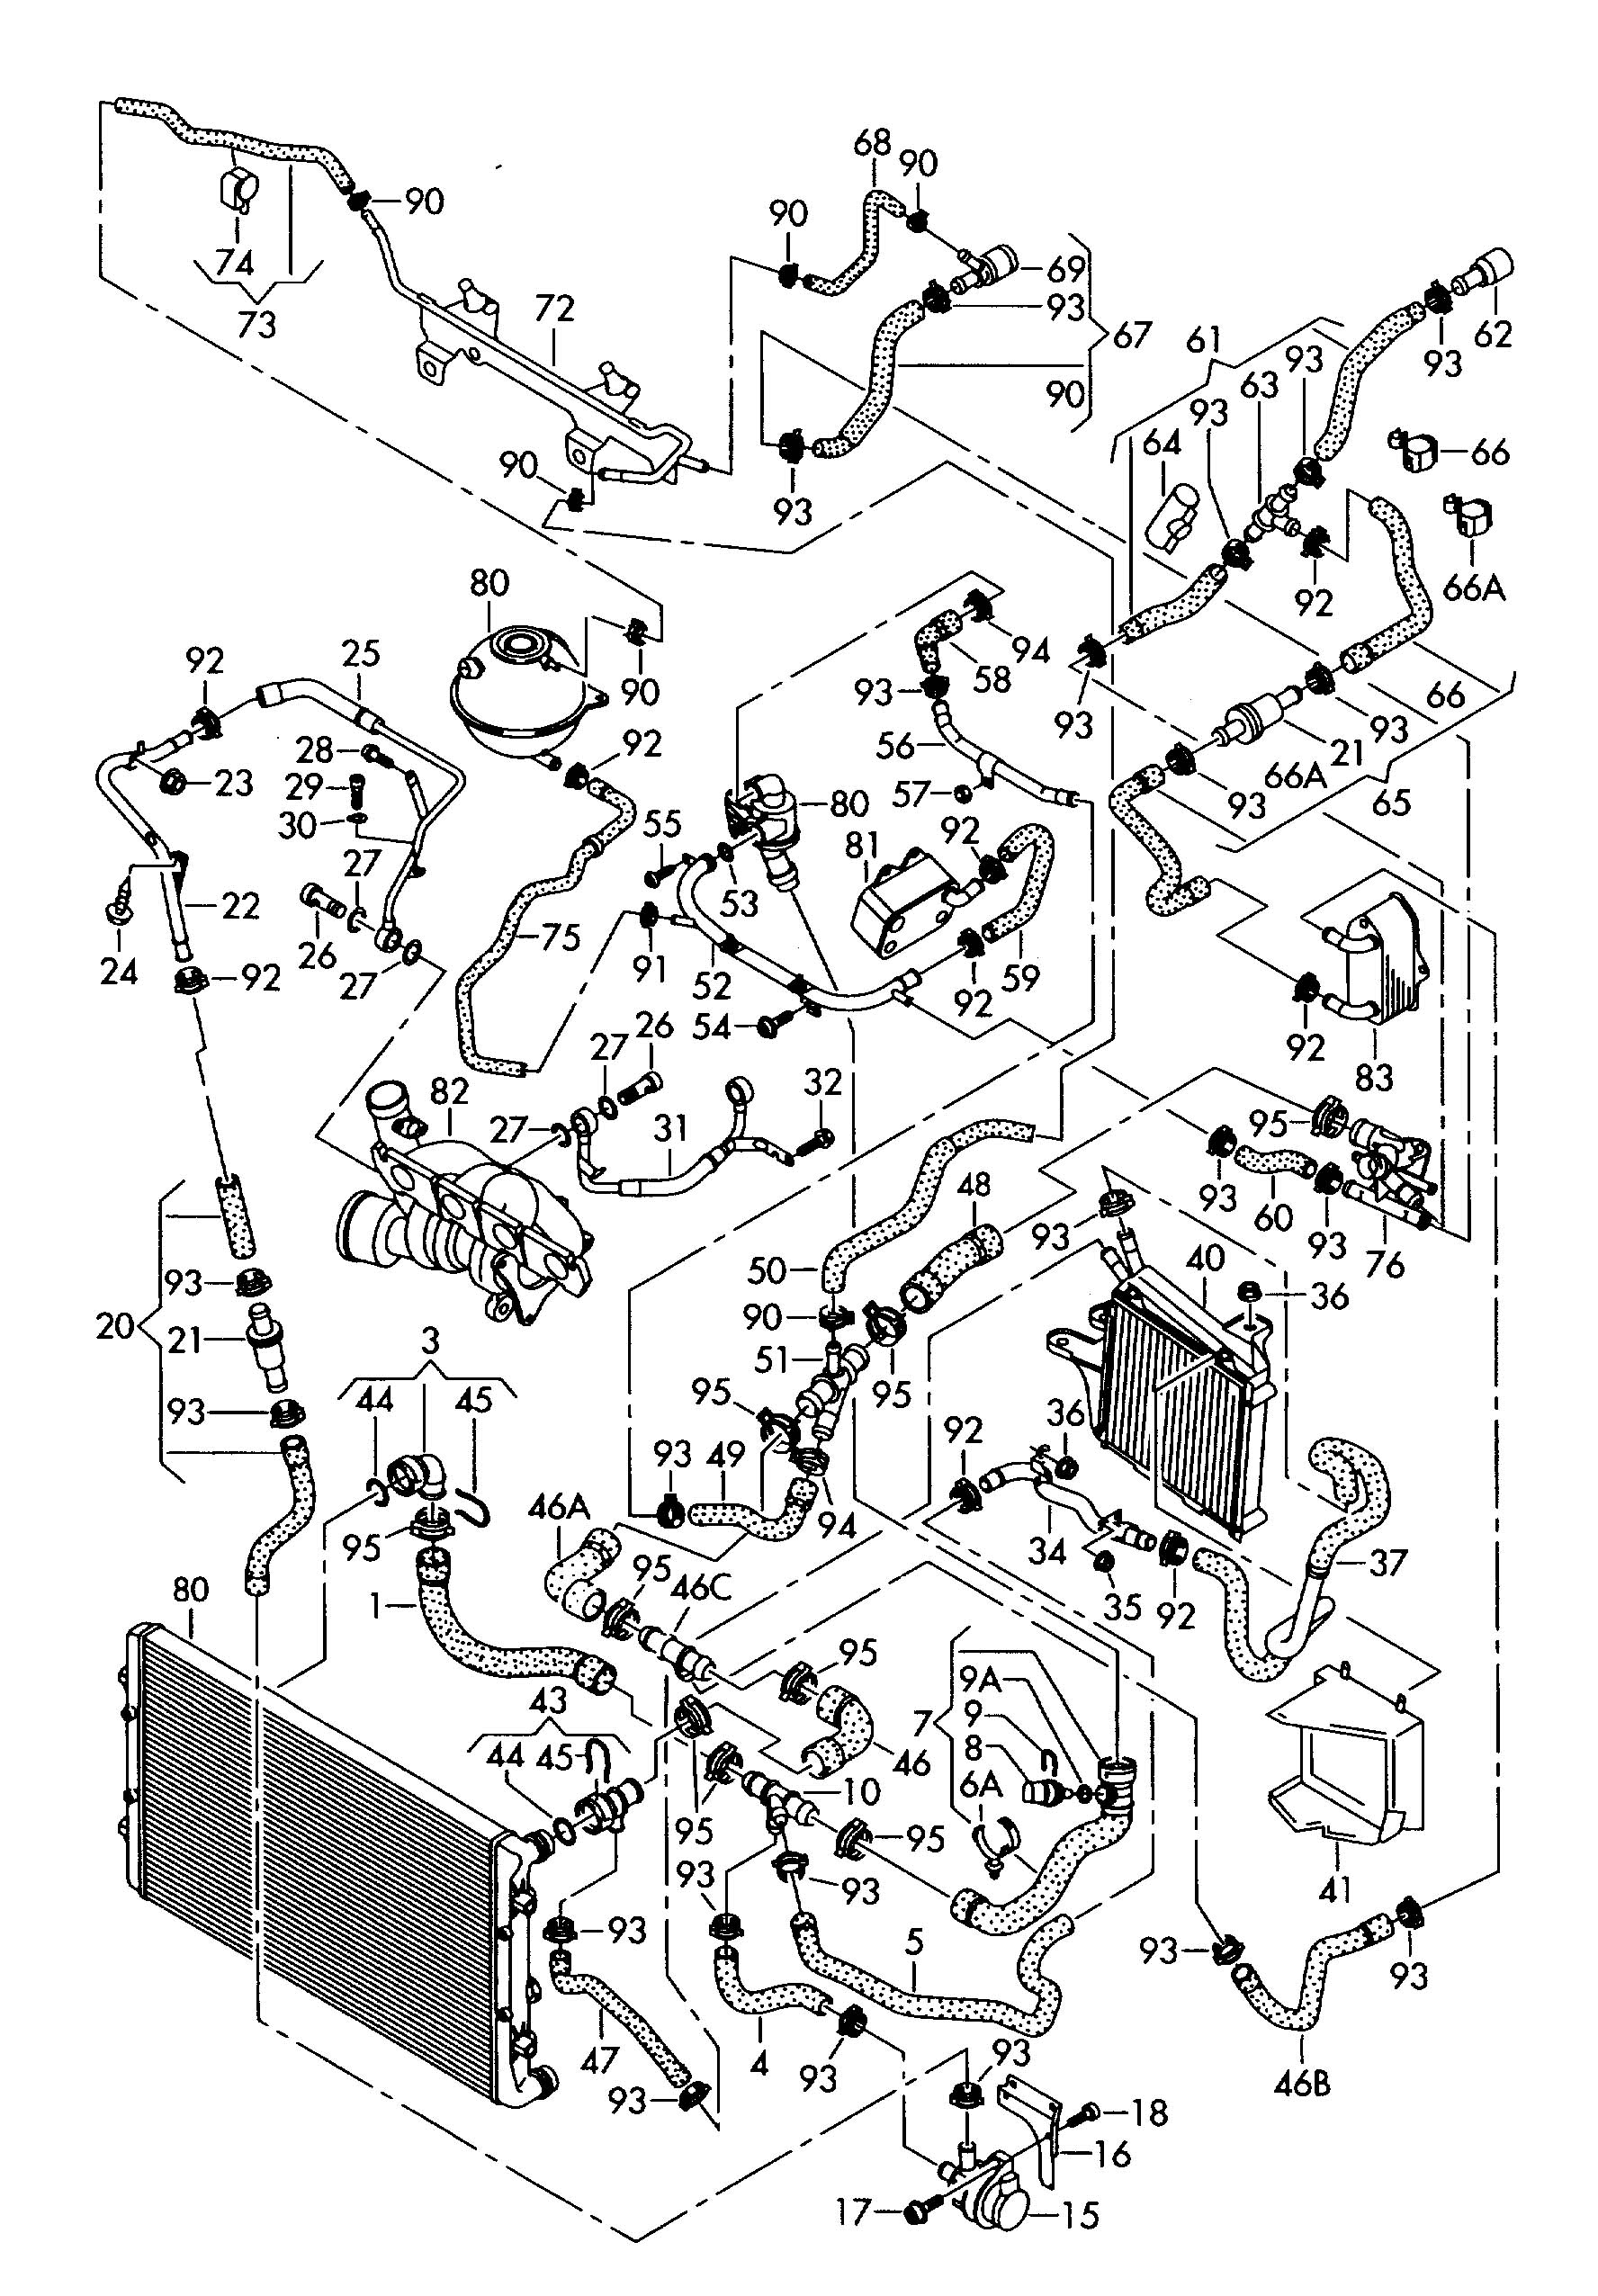 01 Jetta Vr6 Engine Diagram Volkswagen Engine Diagram 1998